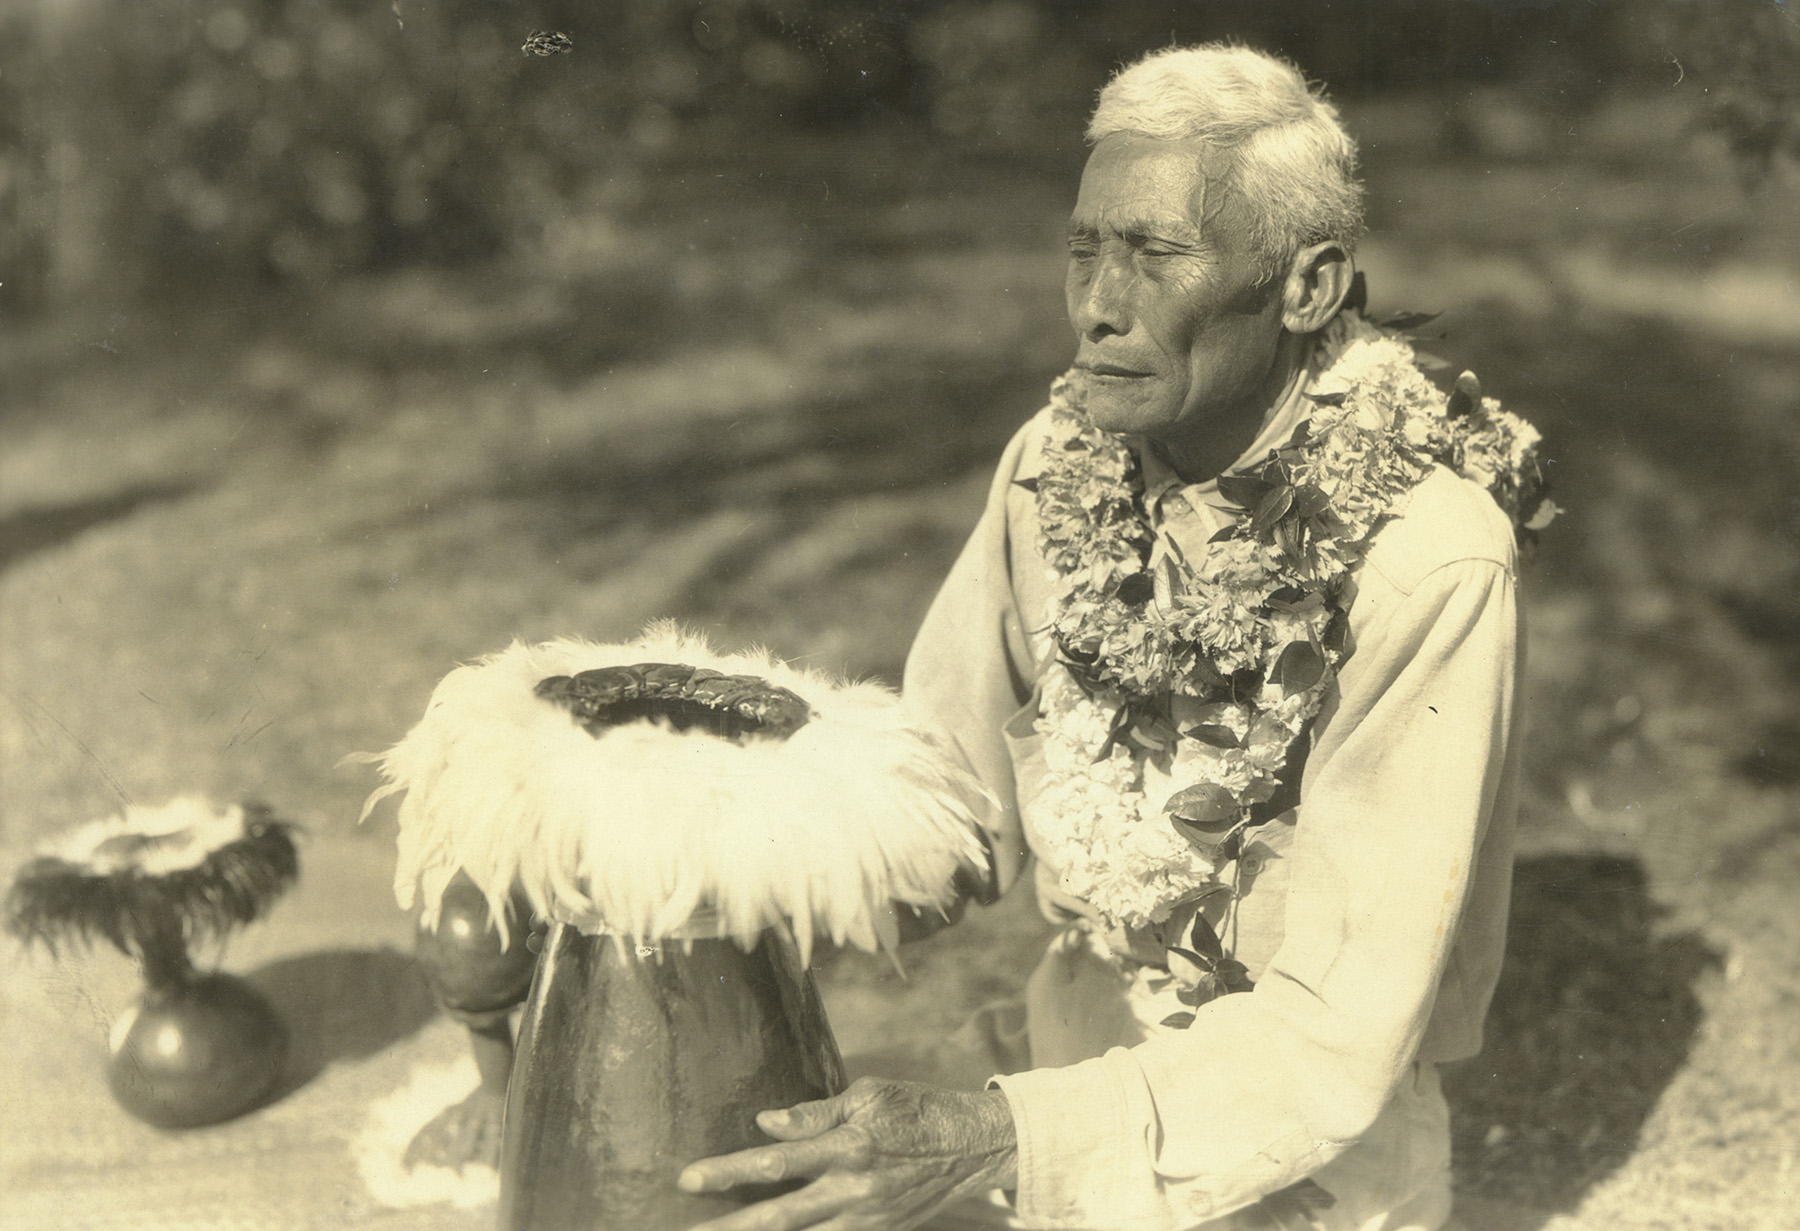 [Hawaiian chanter] Kuluwaimaka; Hawaiʻi, ca. 1930. Photo by Ray Jerome Baker.